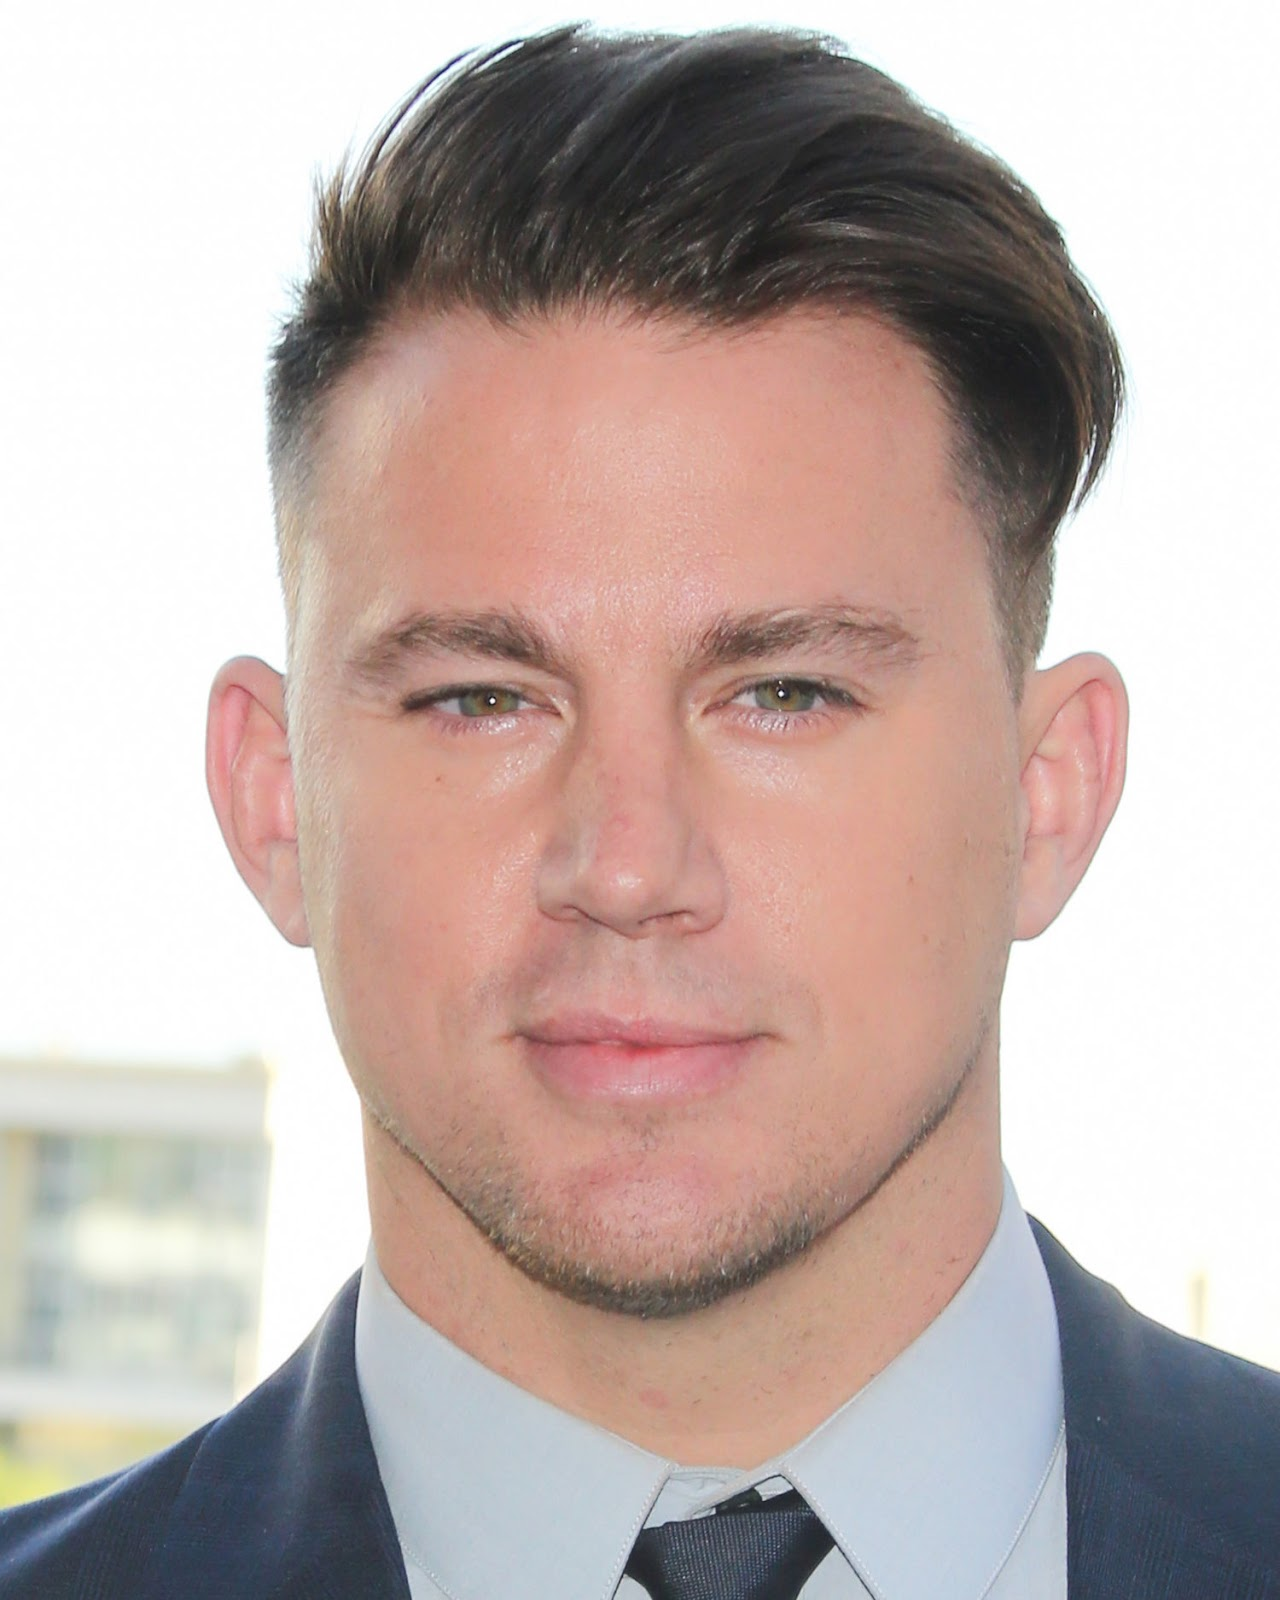 45 Handsome Channing Tatum S Hairstyles Hairstylo